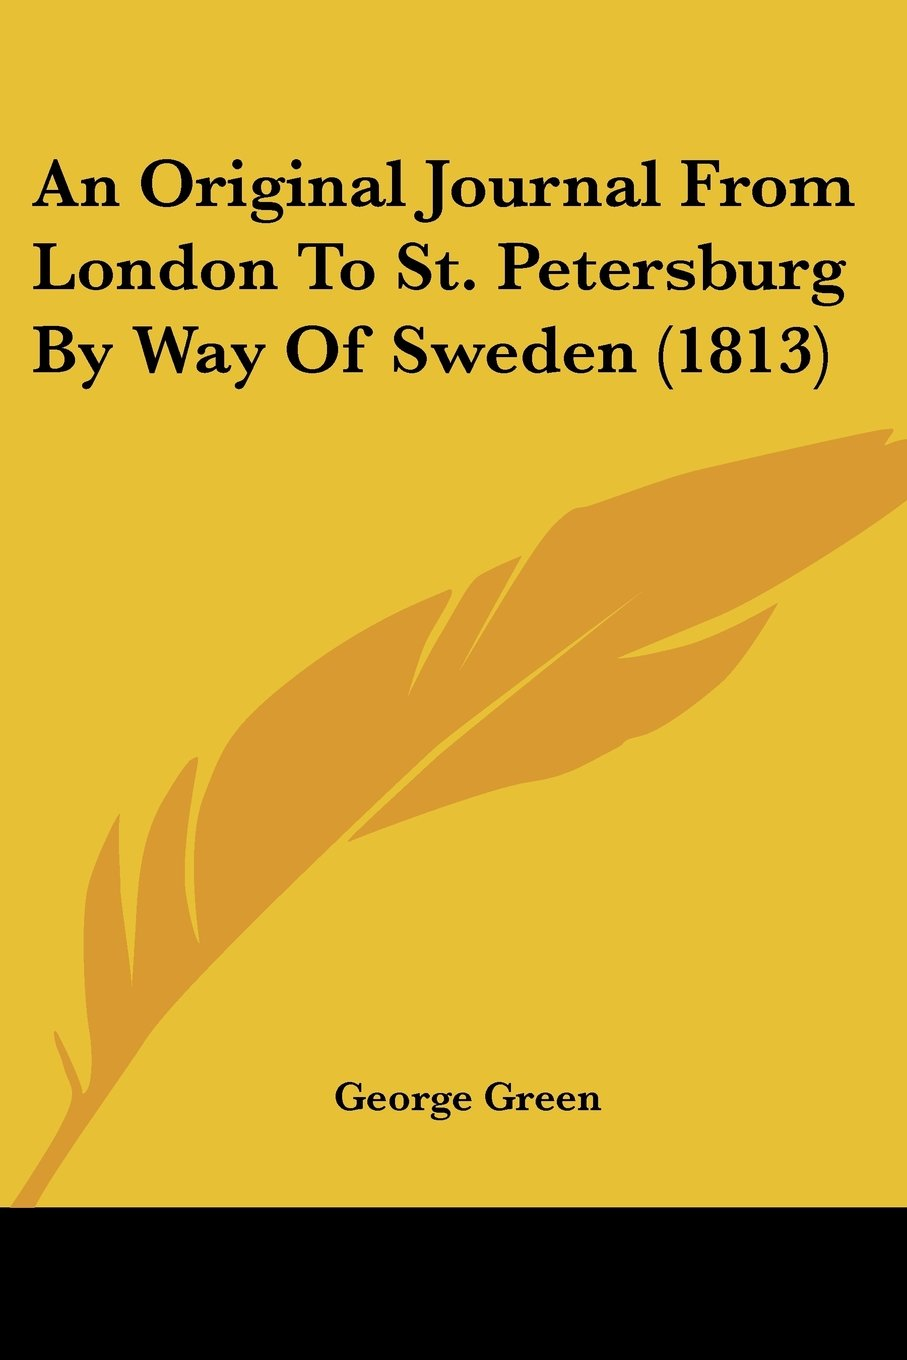 An Original Journal From London To St. Petersburg By Way Of Sweden (1813) pdf